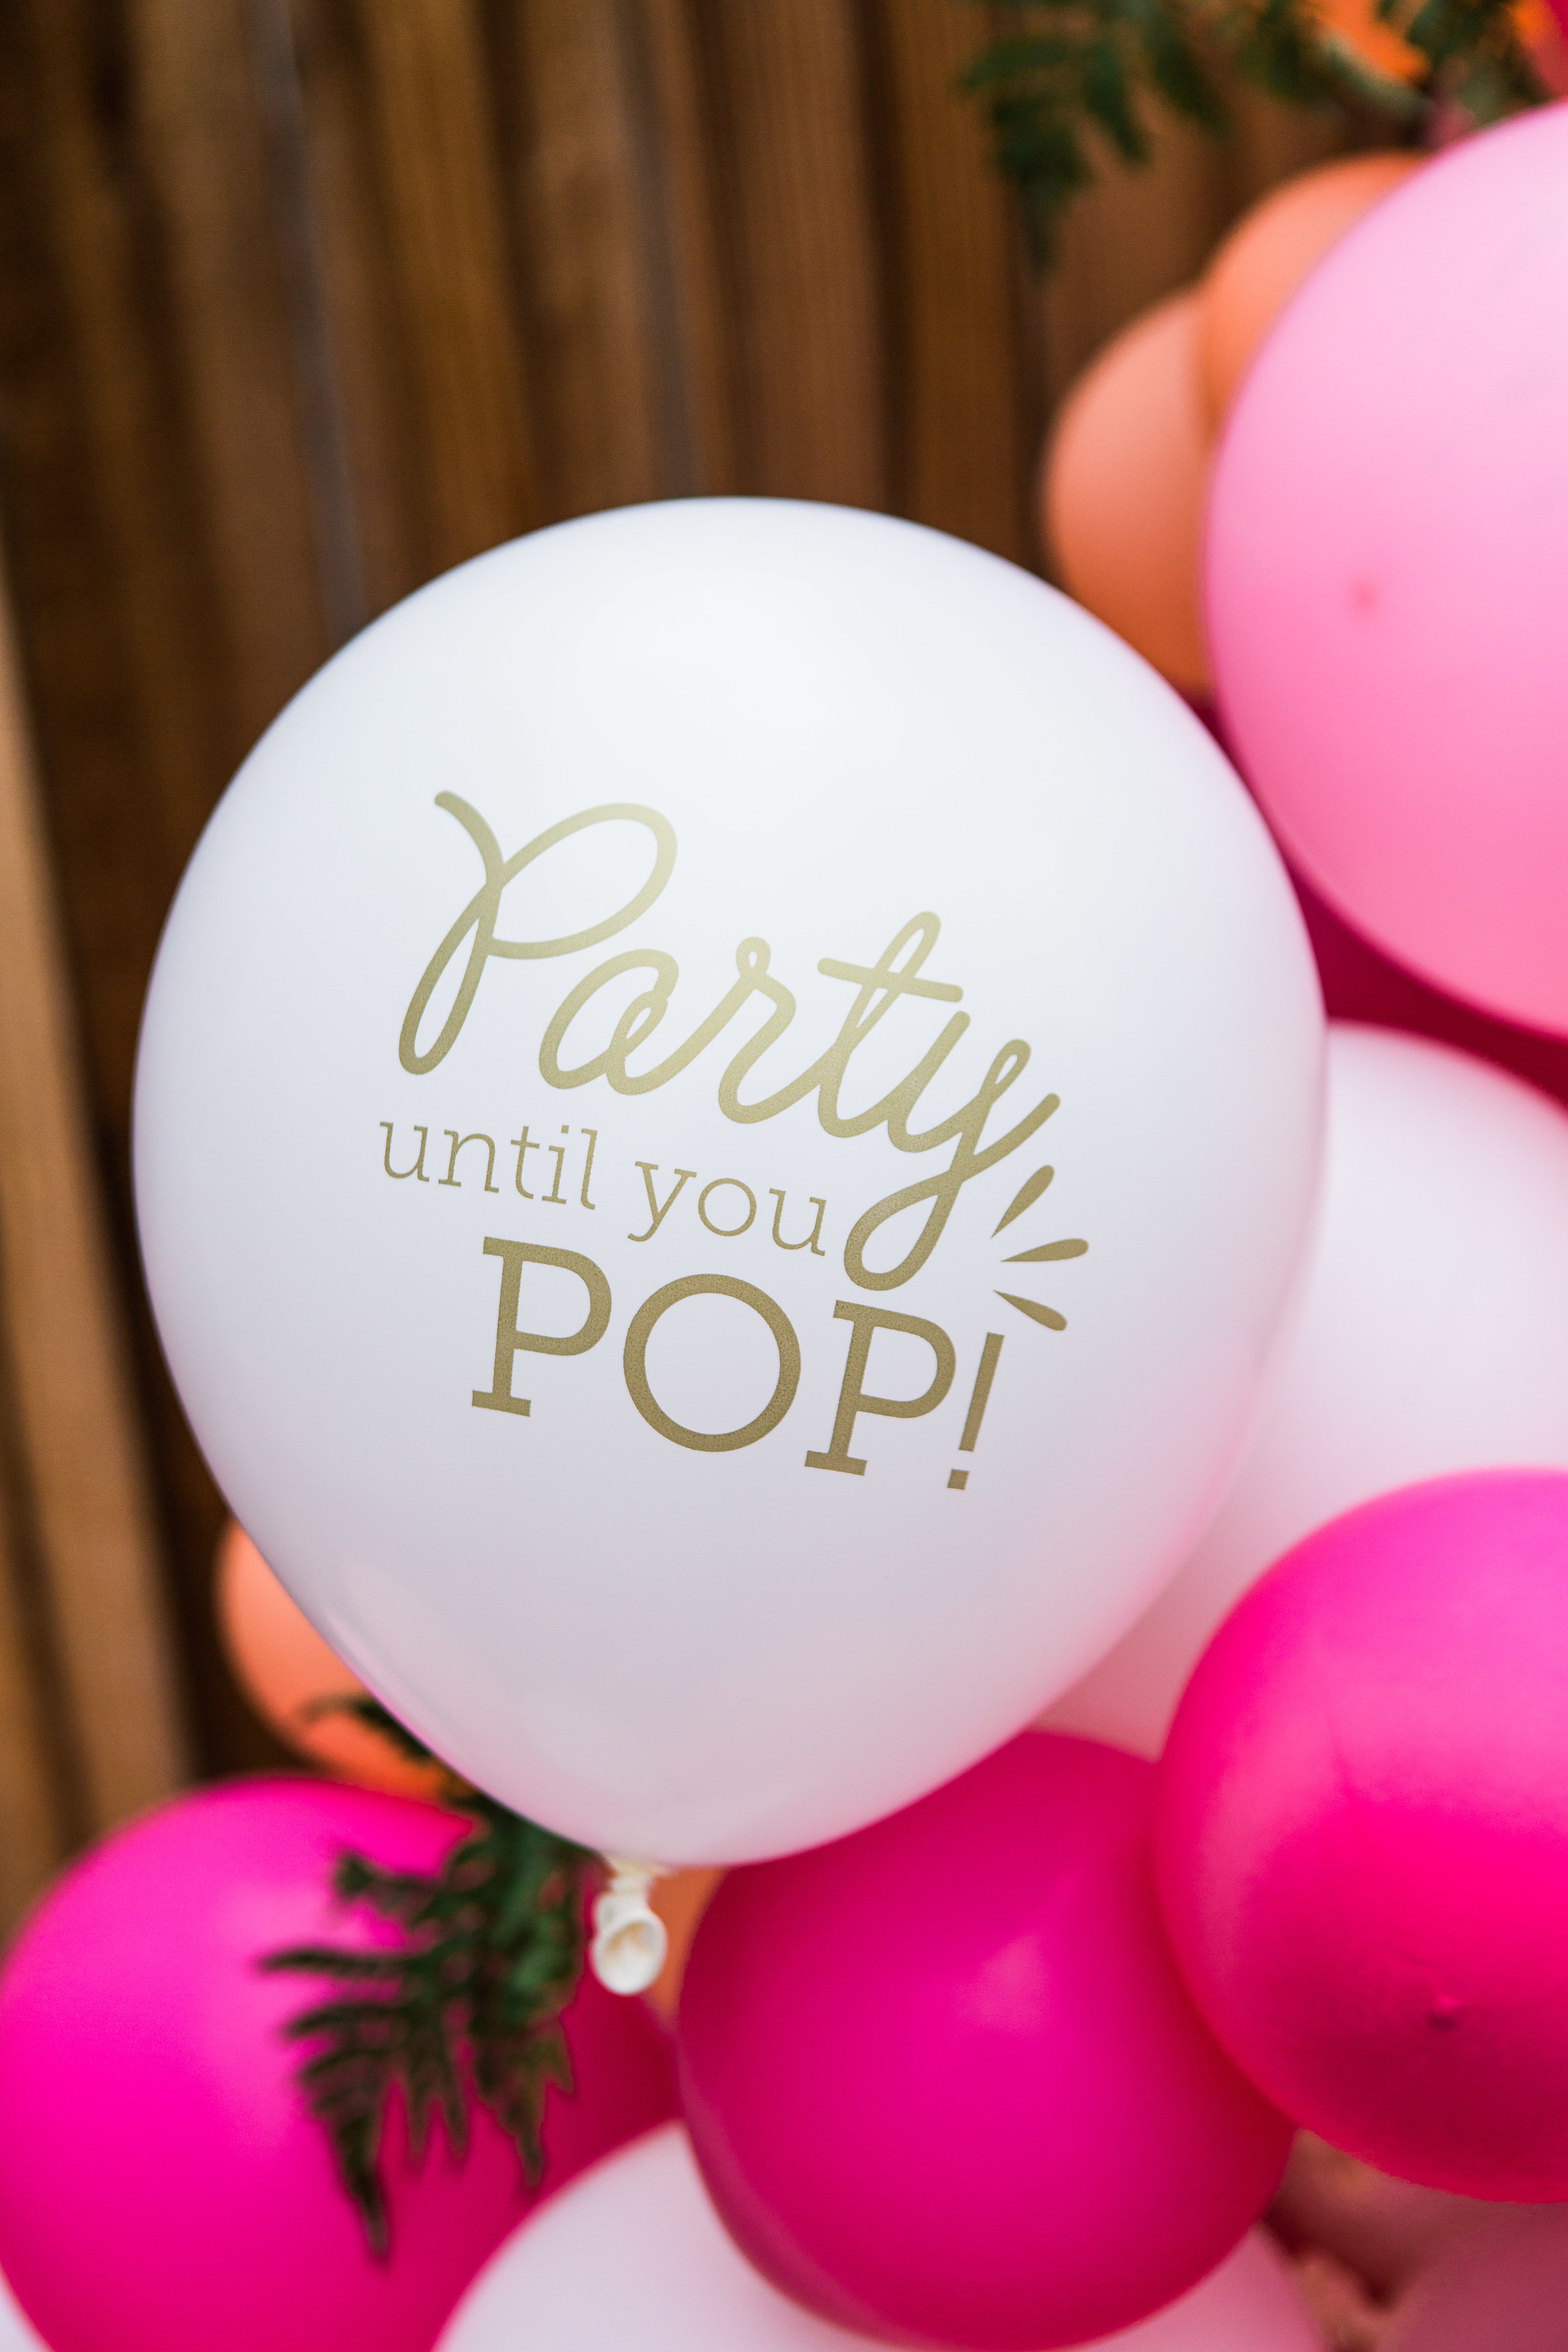 Baby Shower Decor: For Your Party Balloons